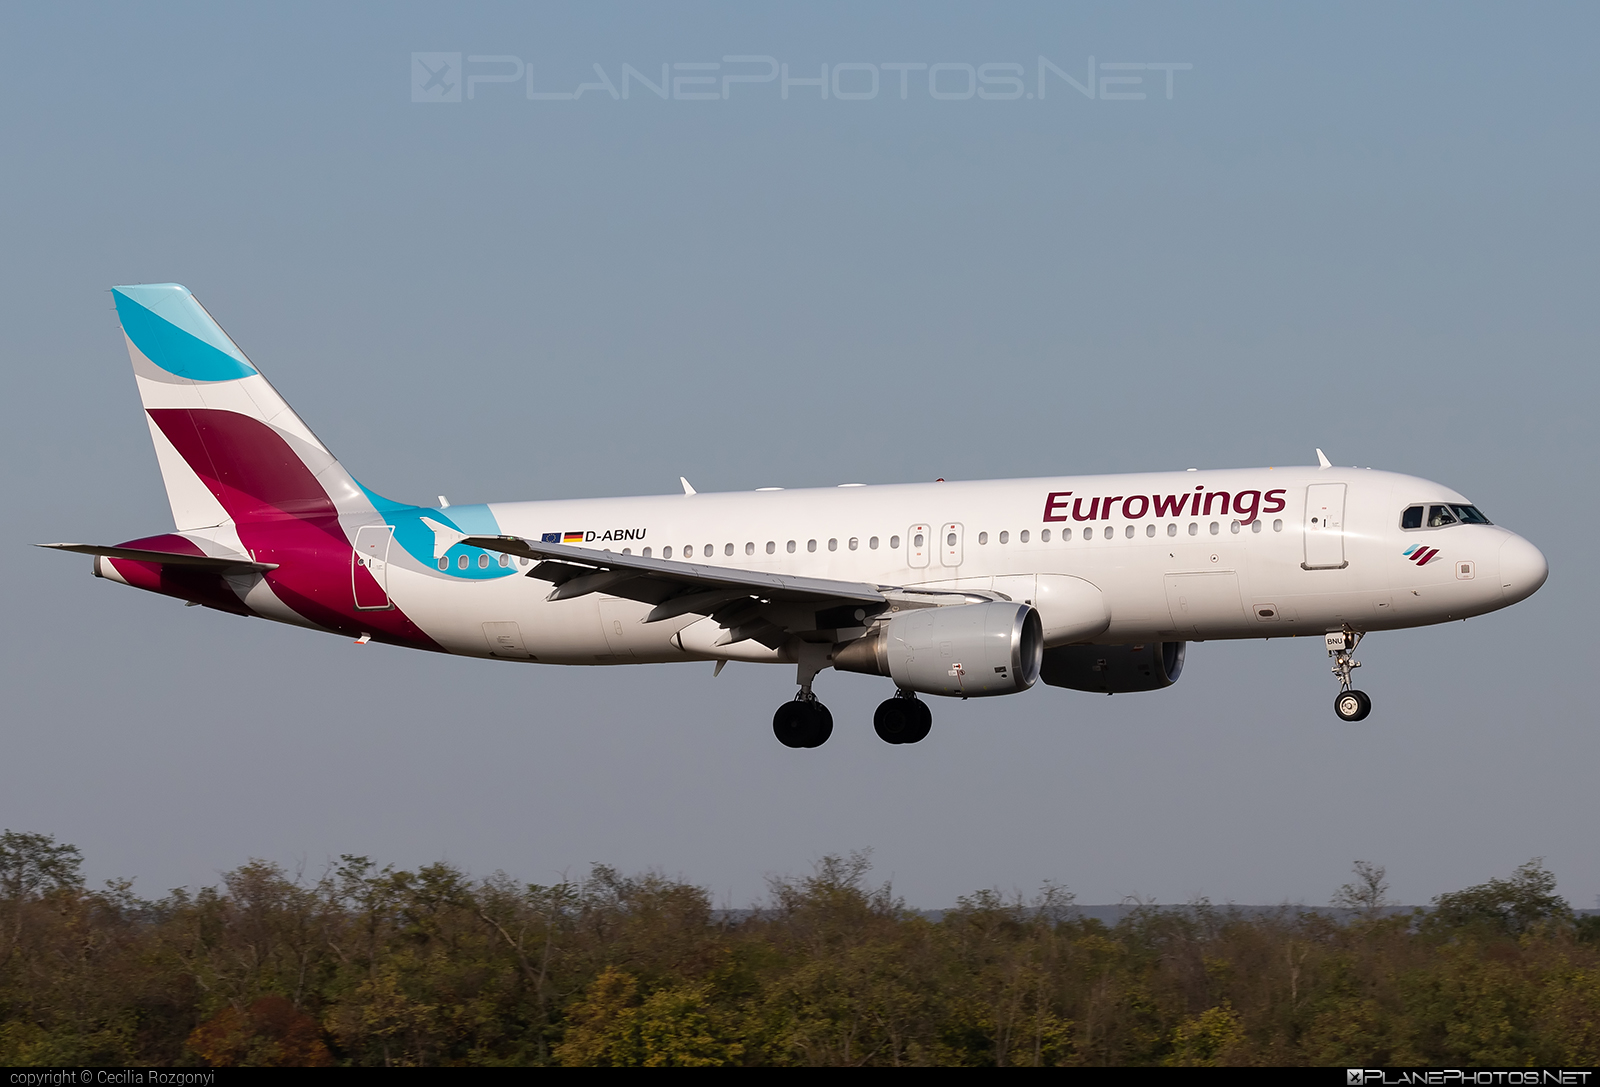 Airbus A320-214 - D-ABNU operated by Eurowings #a320 #a320family #airbus #airbus320 #eurowings